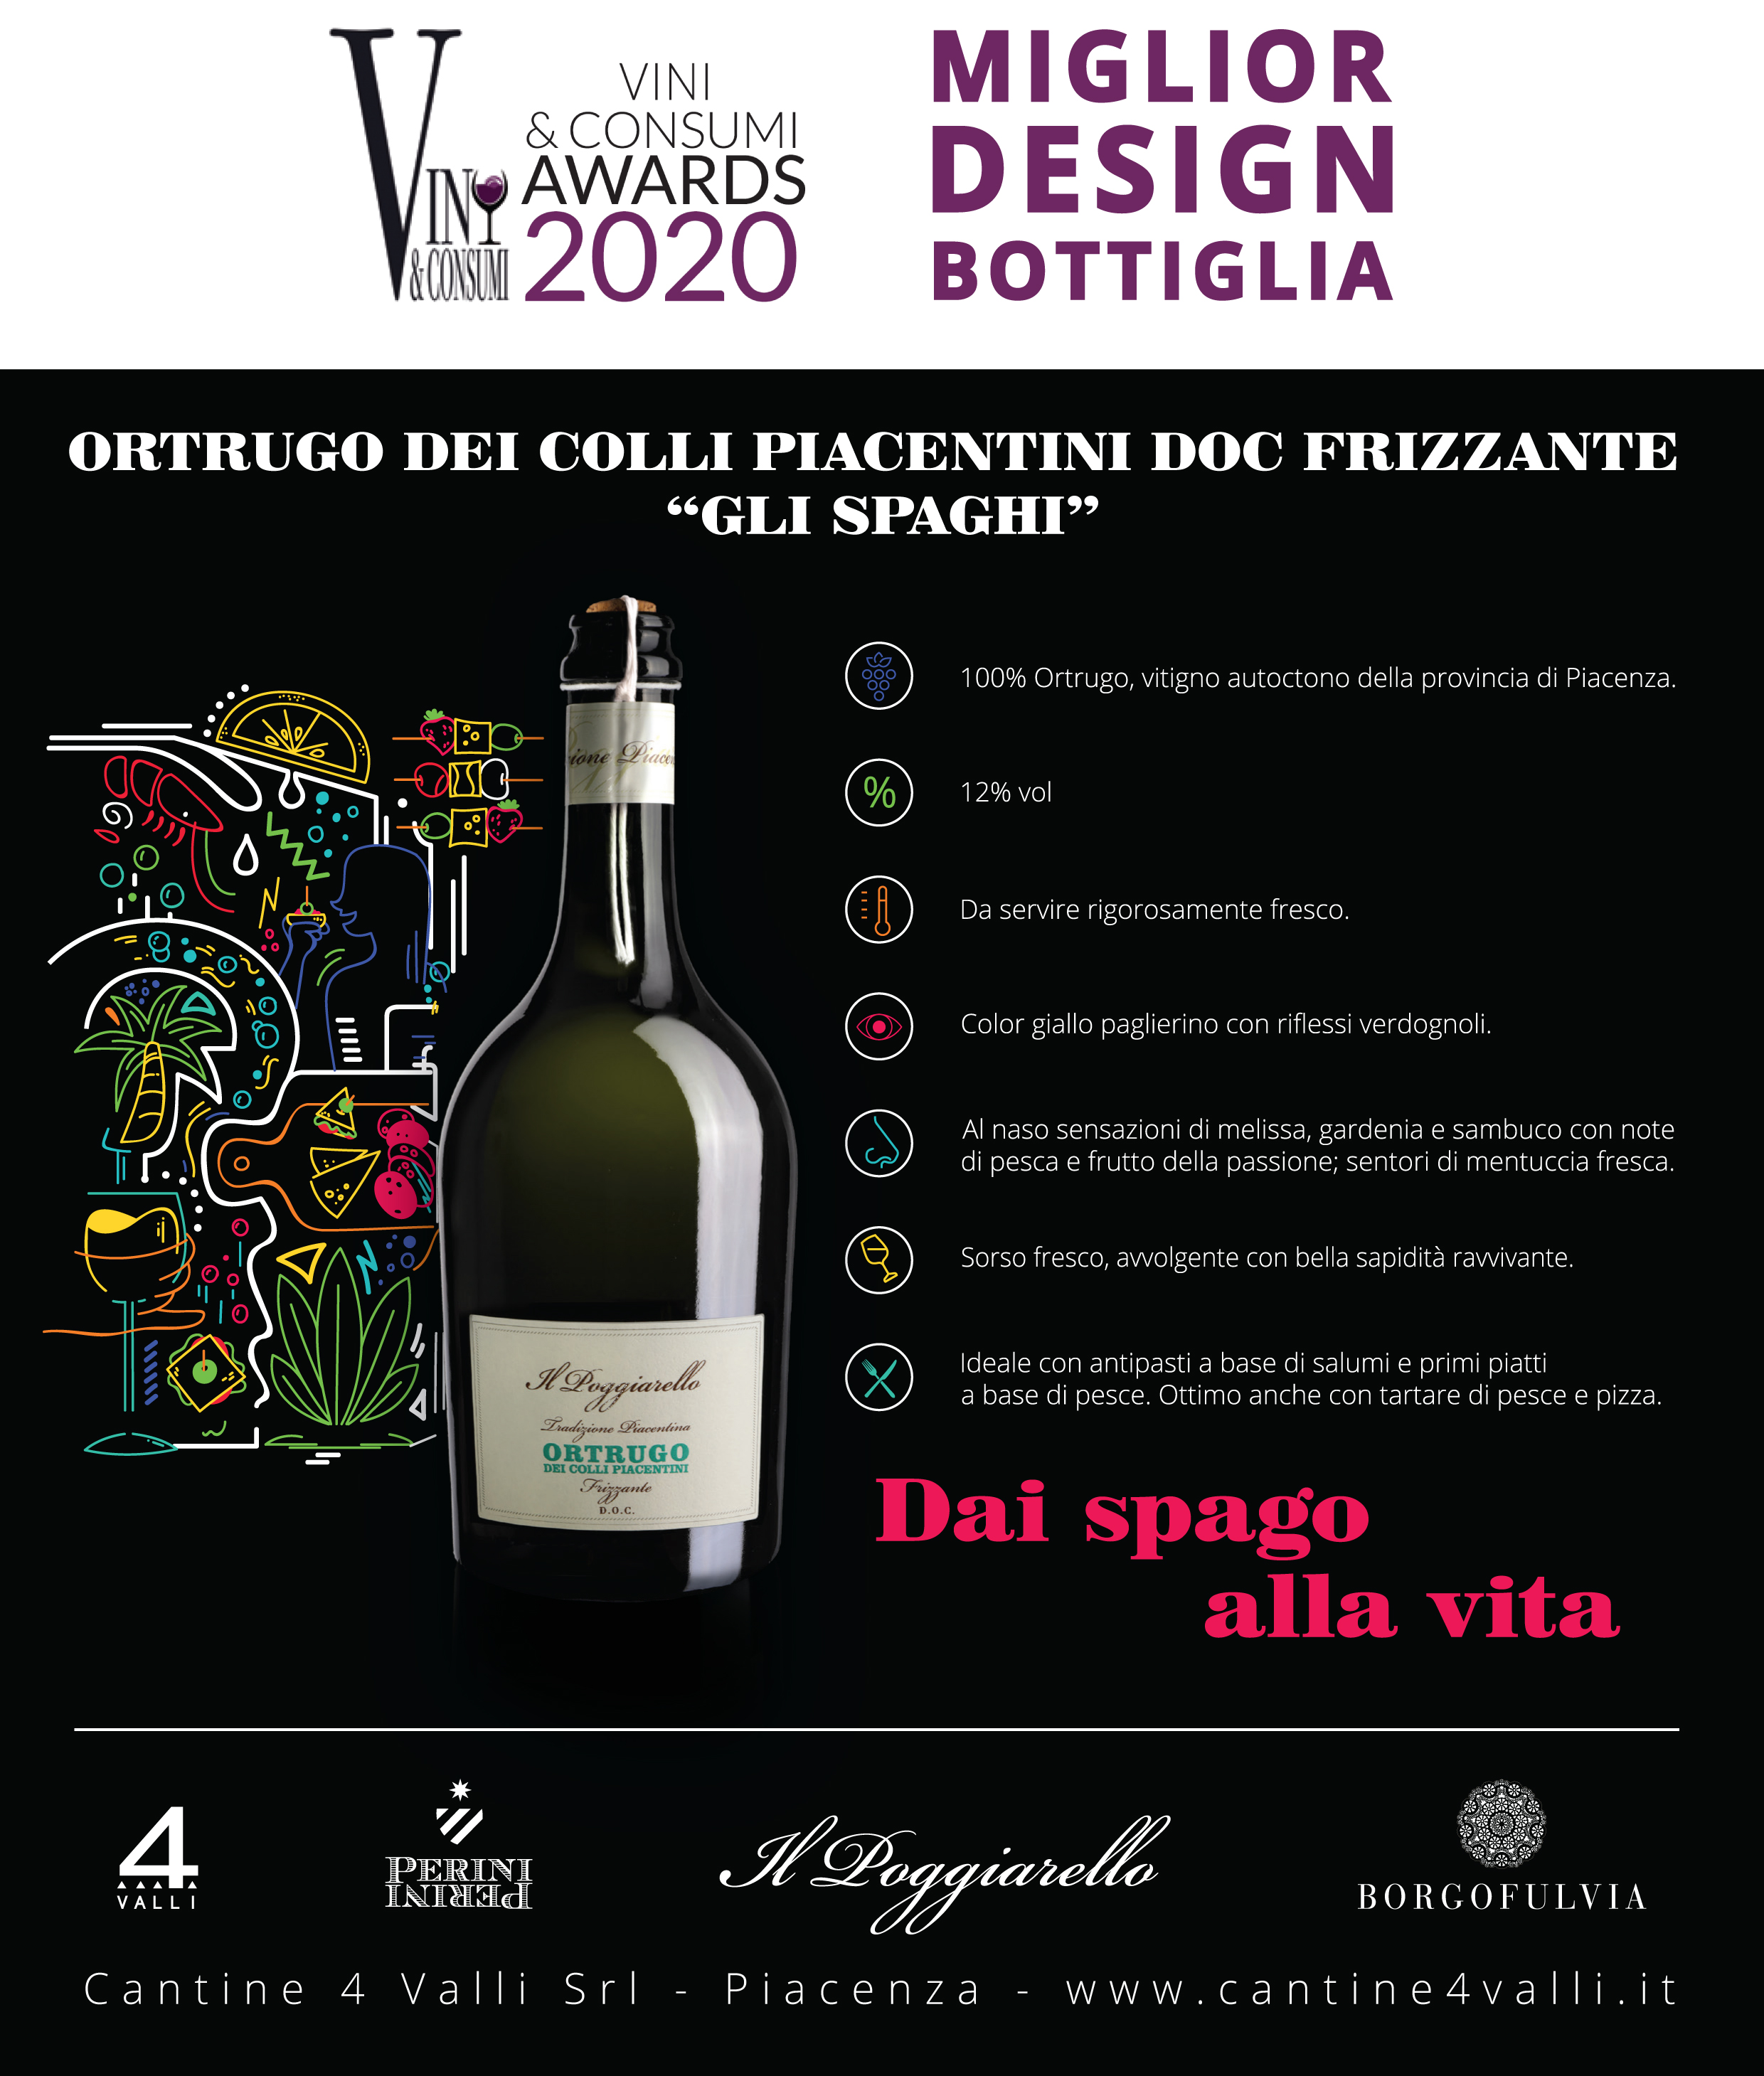 FPWineGroup_Vini&Consumi Awards